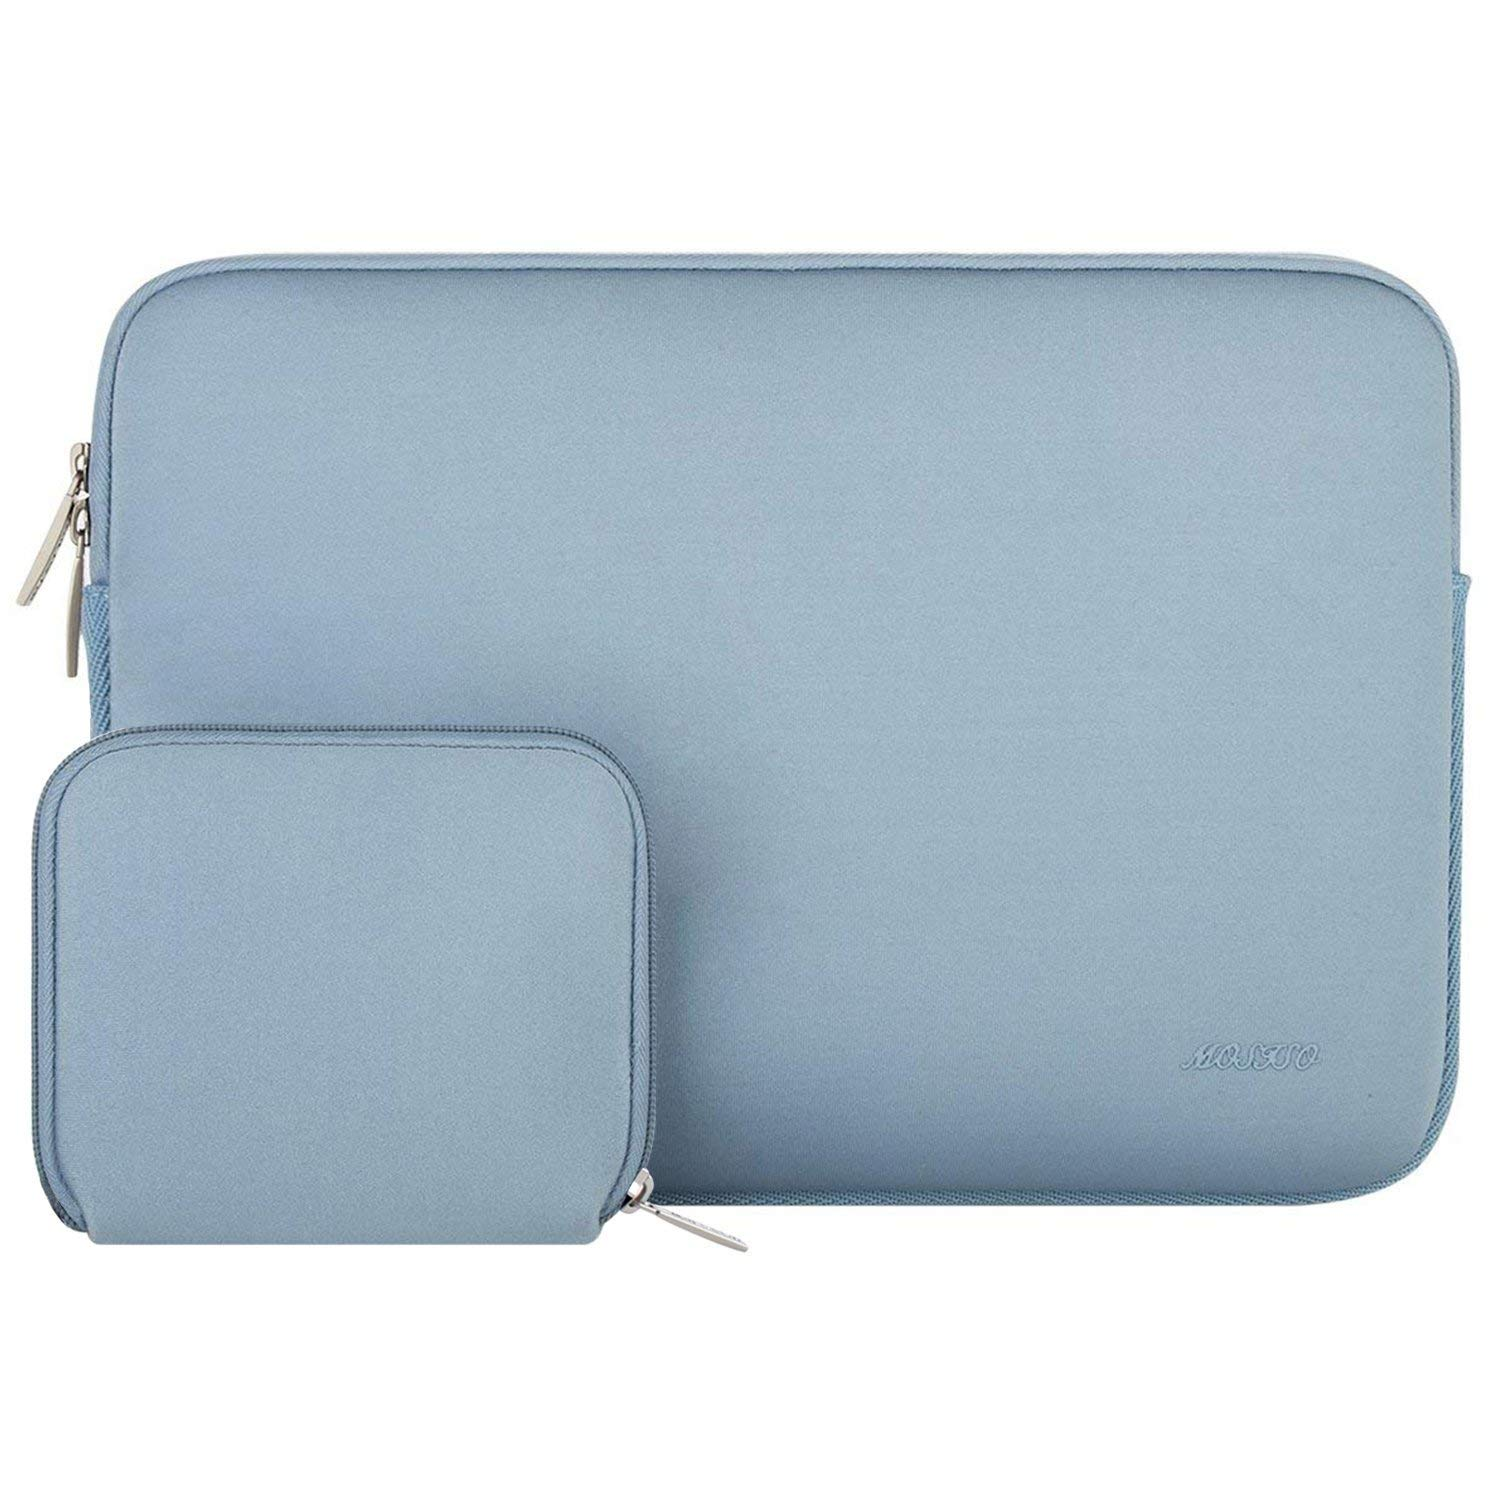 MOSISO Laptop Sleeve Only Compatible with MacBook 12 inch A1534 with Retina Display 2017/2016/2015 Release, Water…